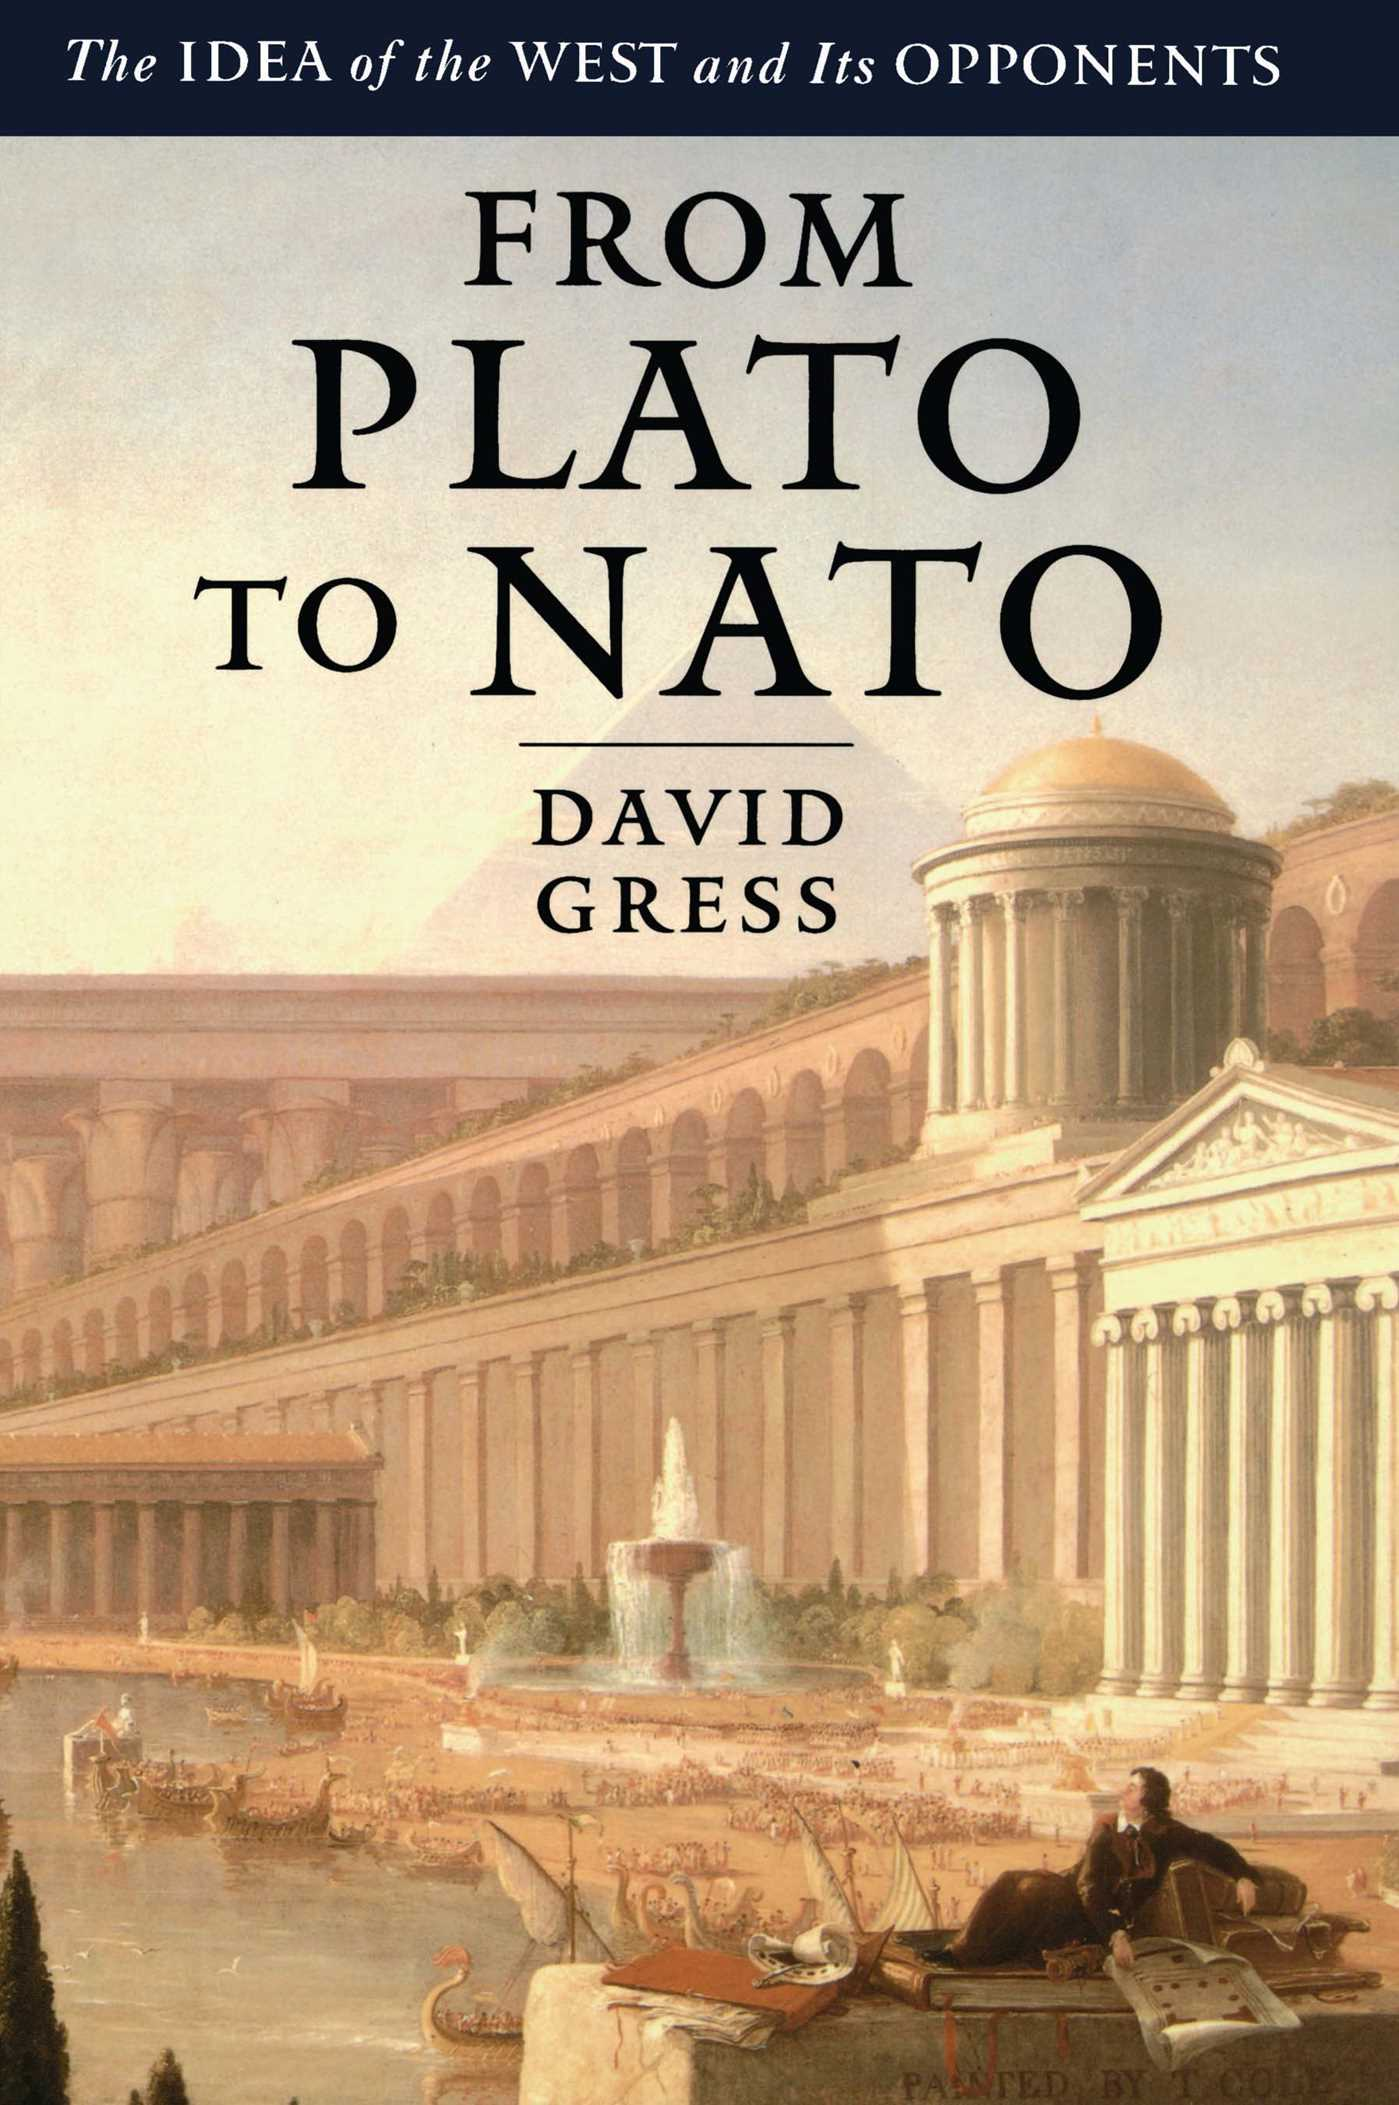 From plato to nato 9780743264884 hr